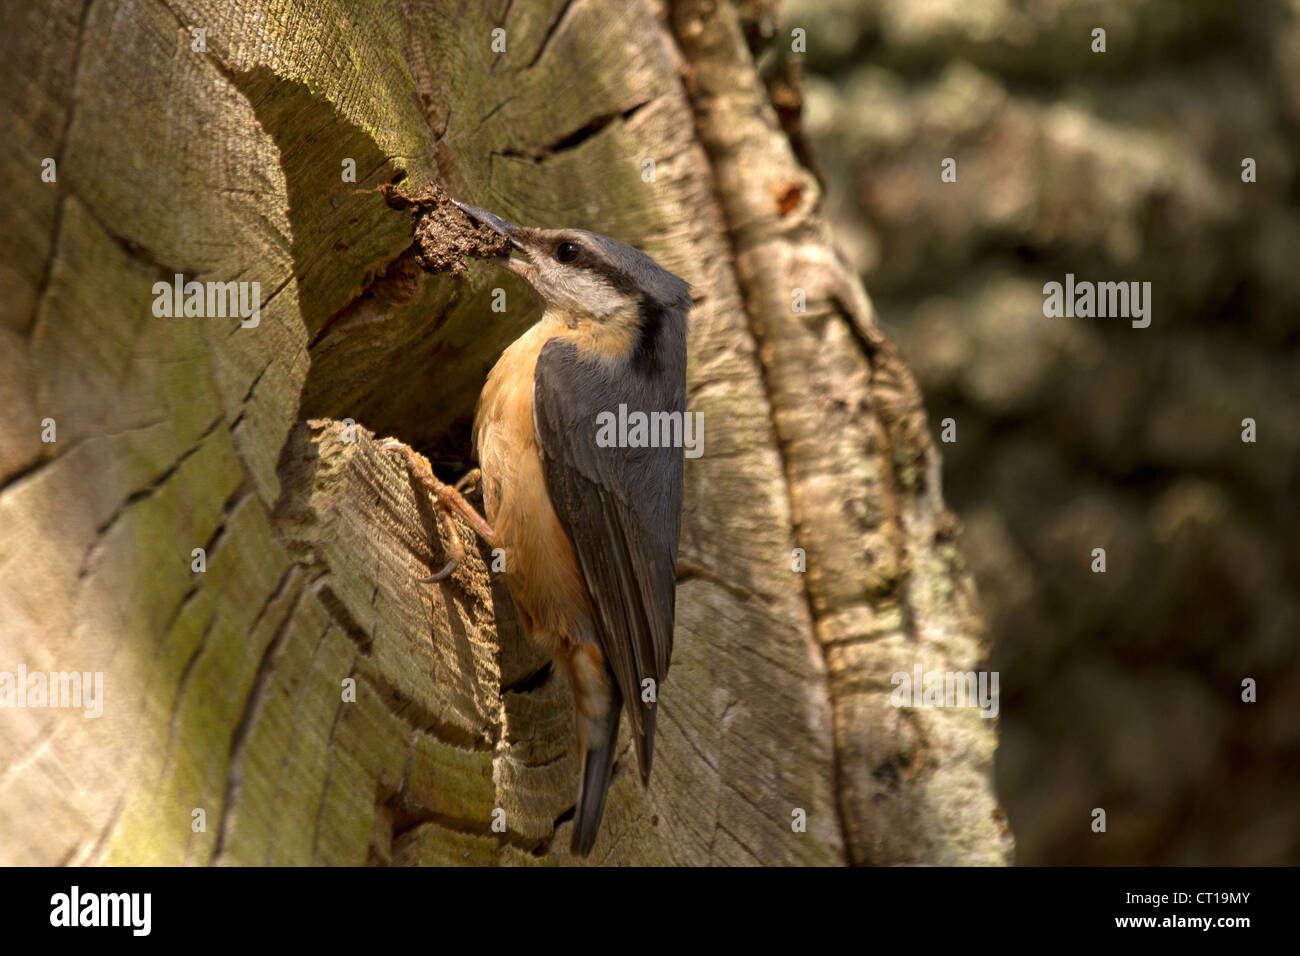 Nuthatch, Sitta europaea building its nest - Stock Image